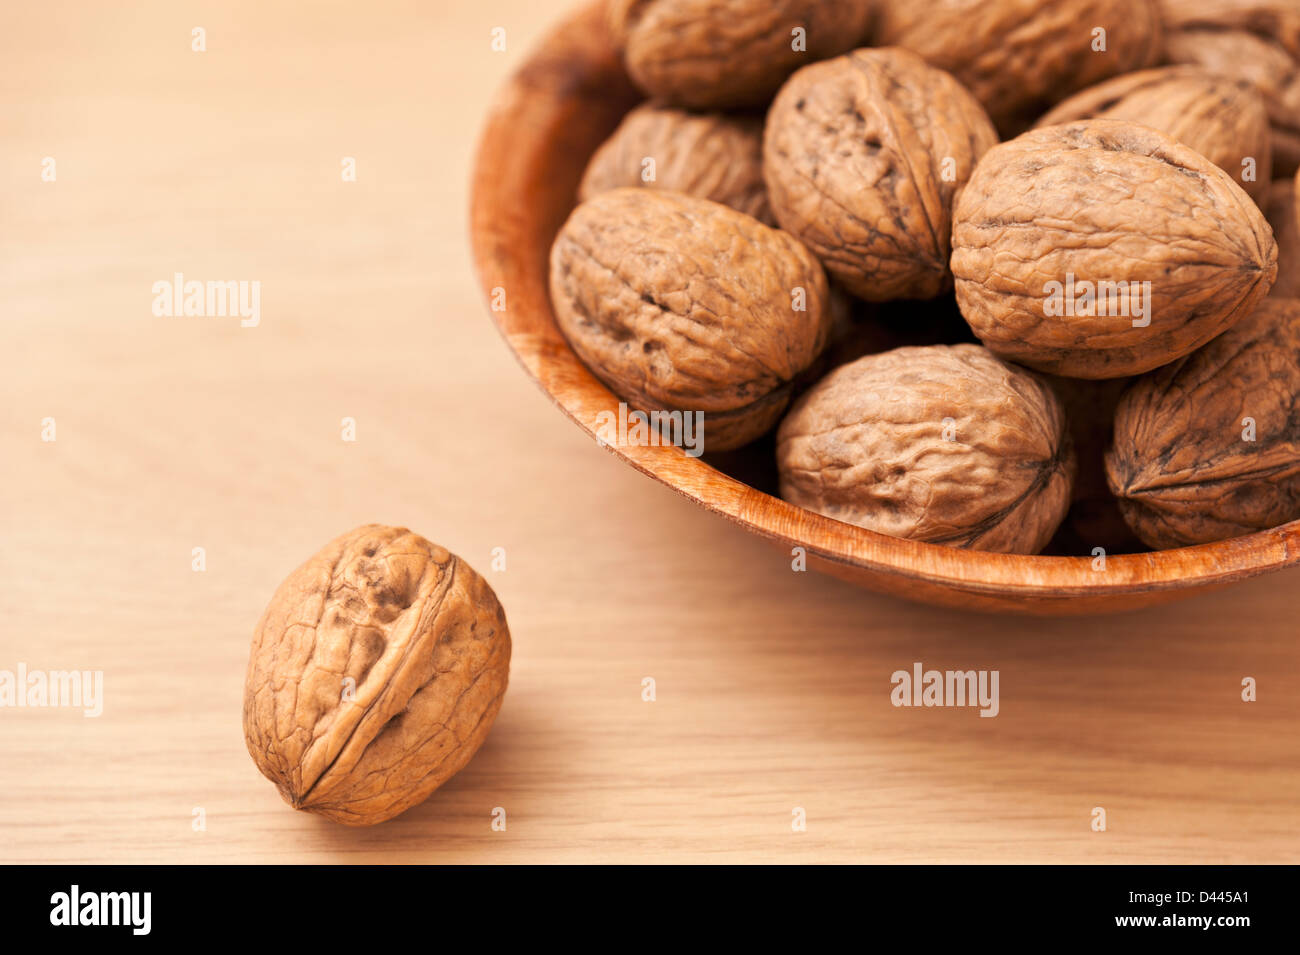 Bowl of Walnuts with one single Walnut in the foreground - Stock Image